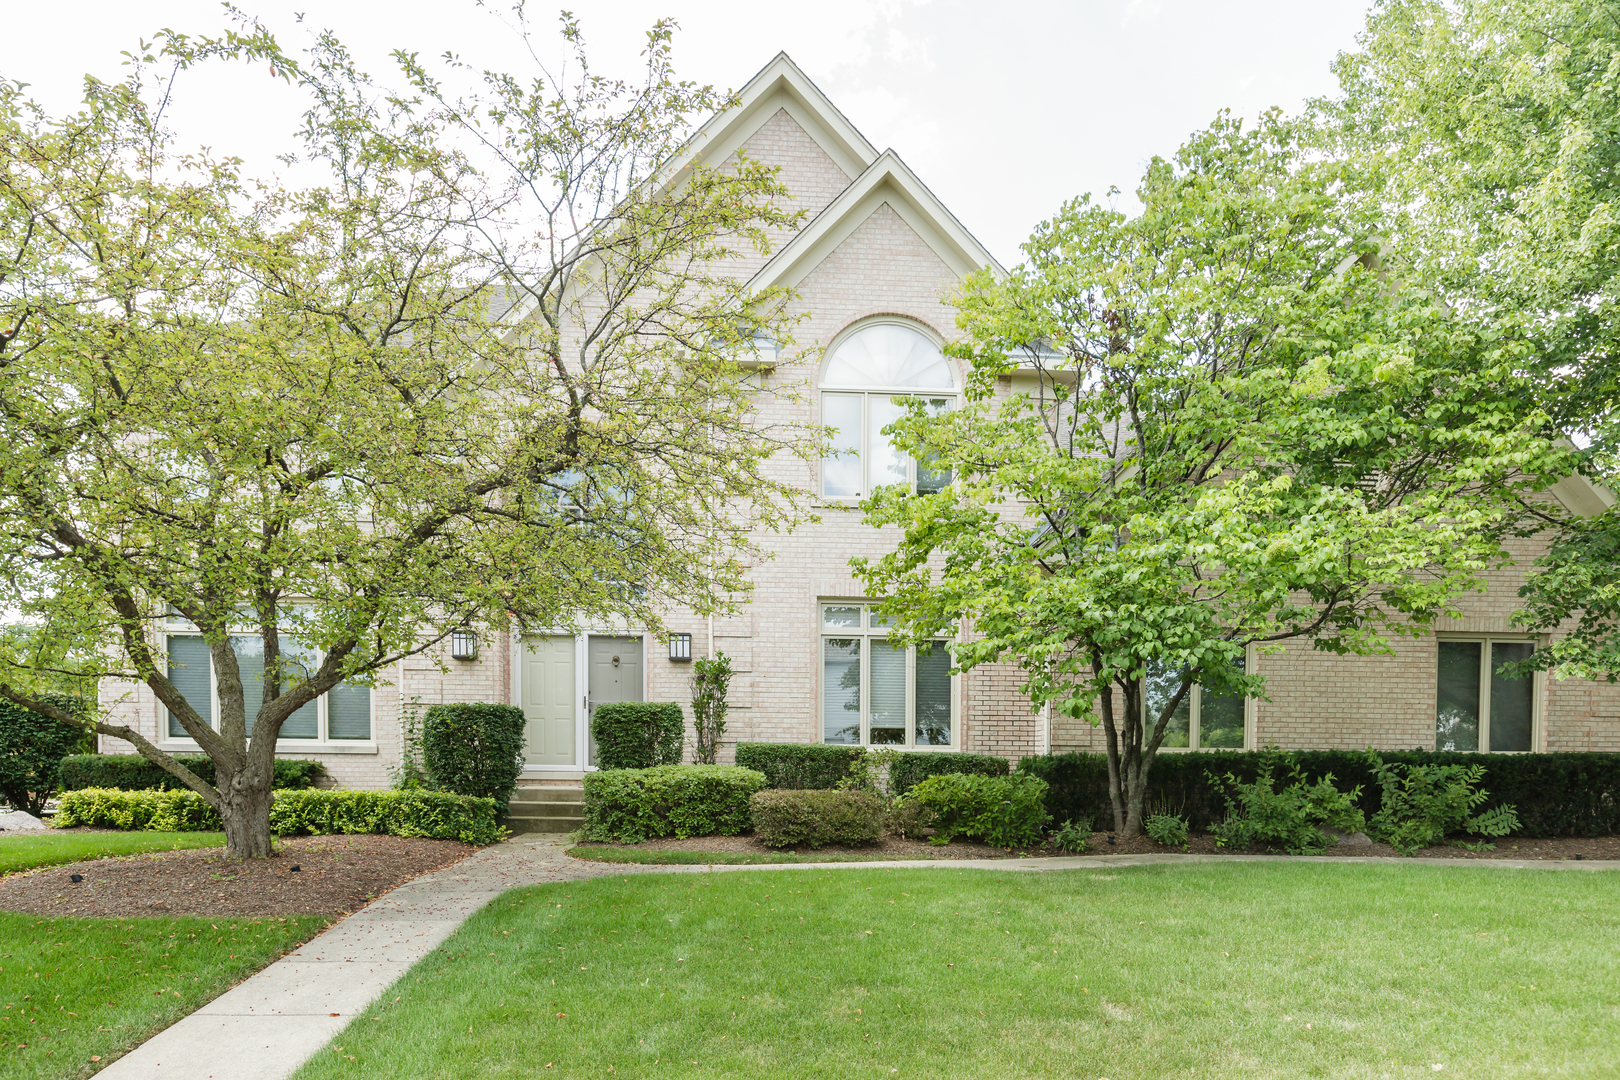 2980 Kingston Drive, Buffalo Grove, IL 60089